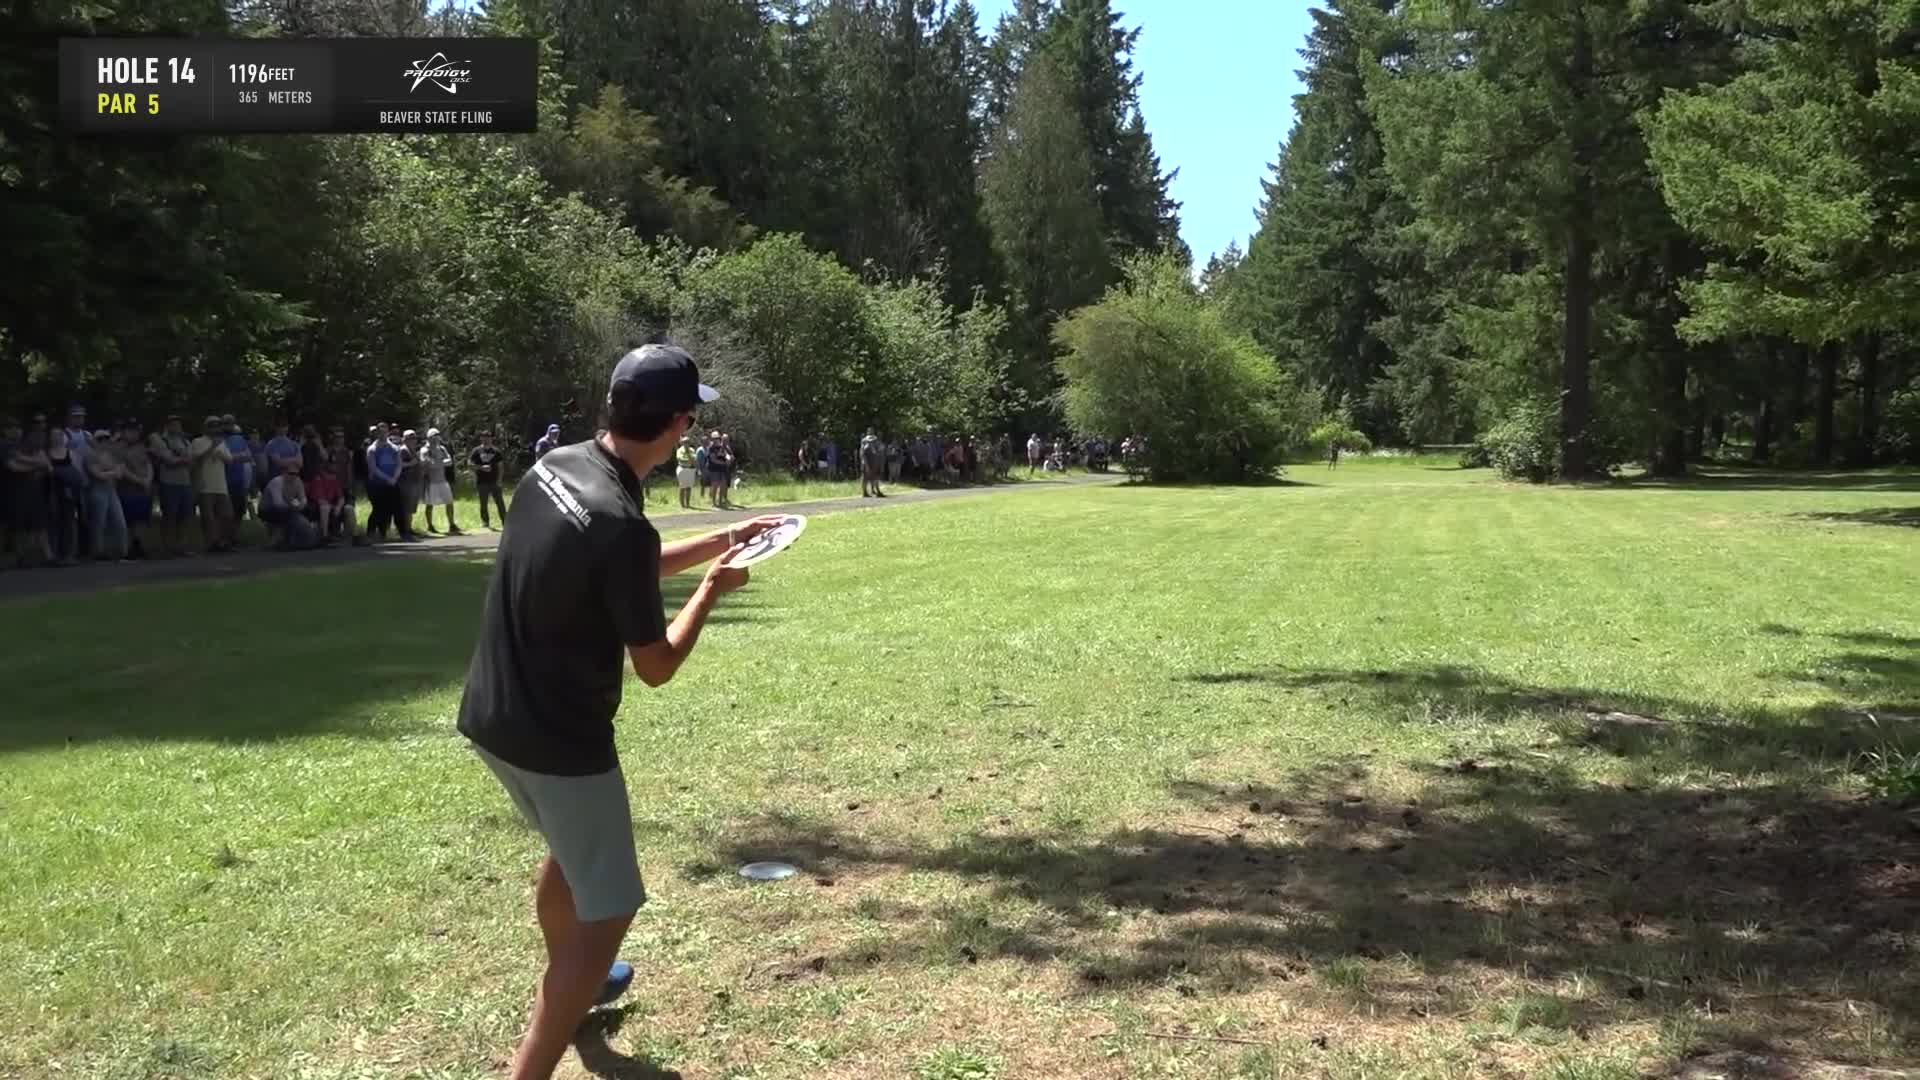 ace, bsf, dela, delaveaga, dgpt, dgwt, disc, disc golf, frolf, hole in one, masters cup, mcbeast, milo, nate sexton, nt, paul mcbeth, pdga, simon lizotte, tournament, worlds, 2019 Beaver State Fling - Final Round, Part 2 - Eagle McMahon hole 14 approach GIFs